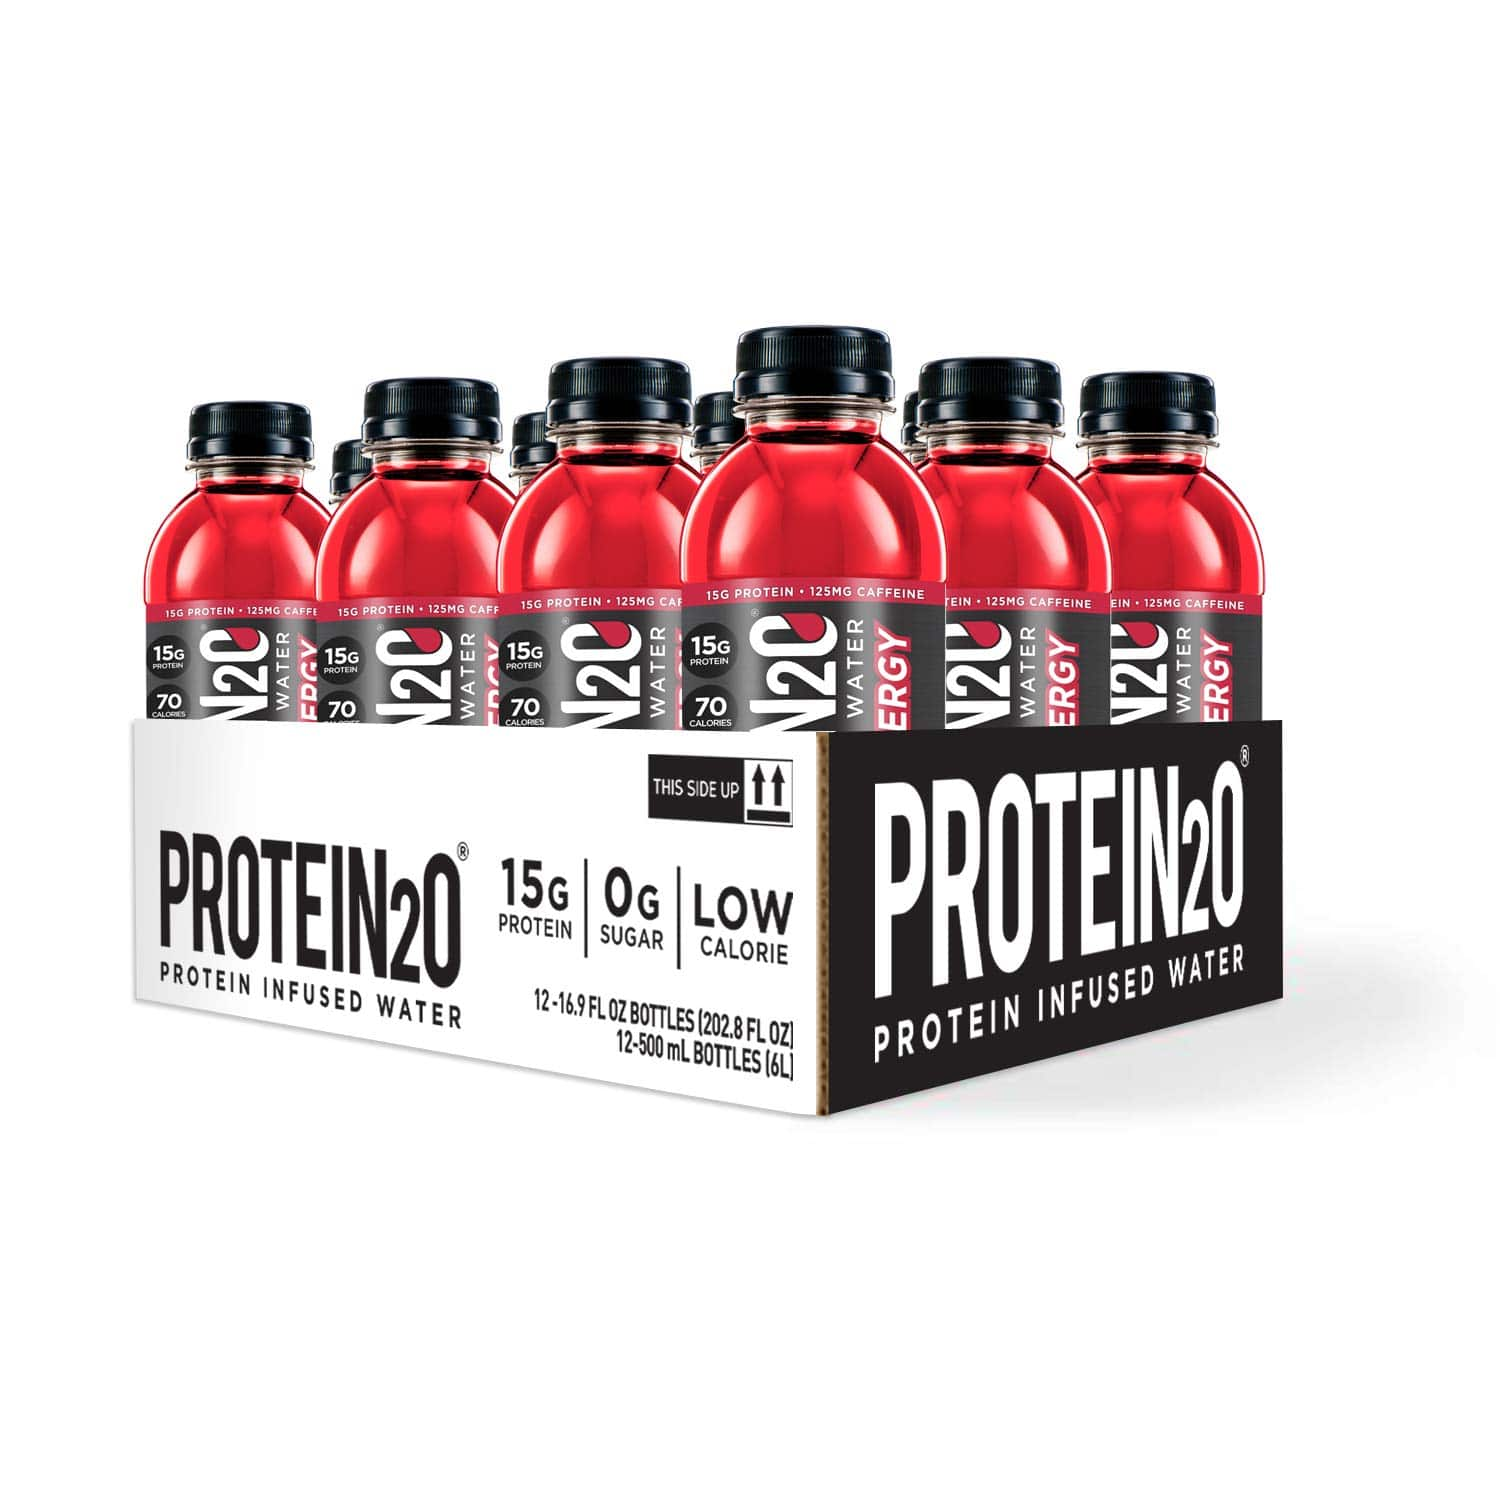 12-Pack Protein2o + Energy Low Calorie 15g Protein Infused Water (Cherry Lemonade) $9.87 w/ S&S + Free S&H w/ Prime or $25+